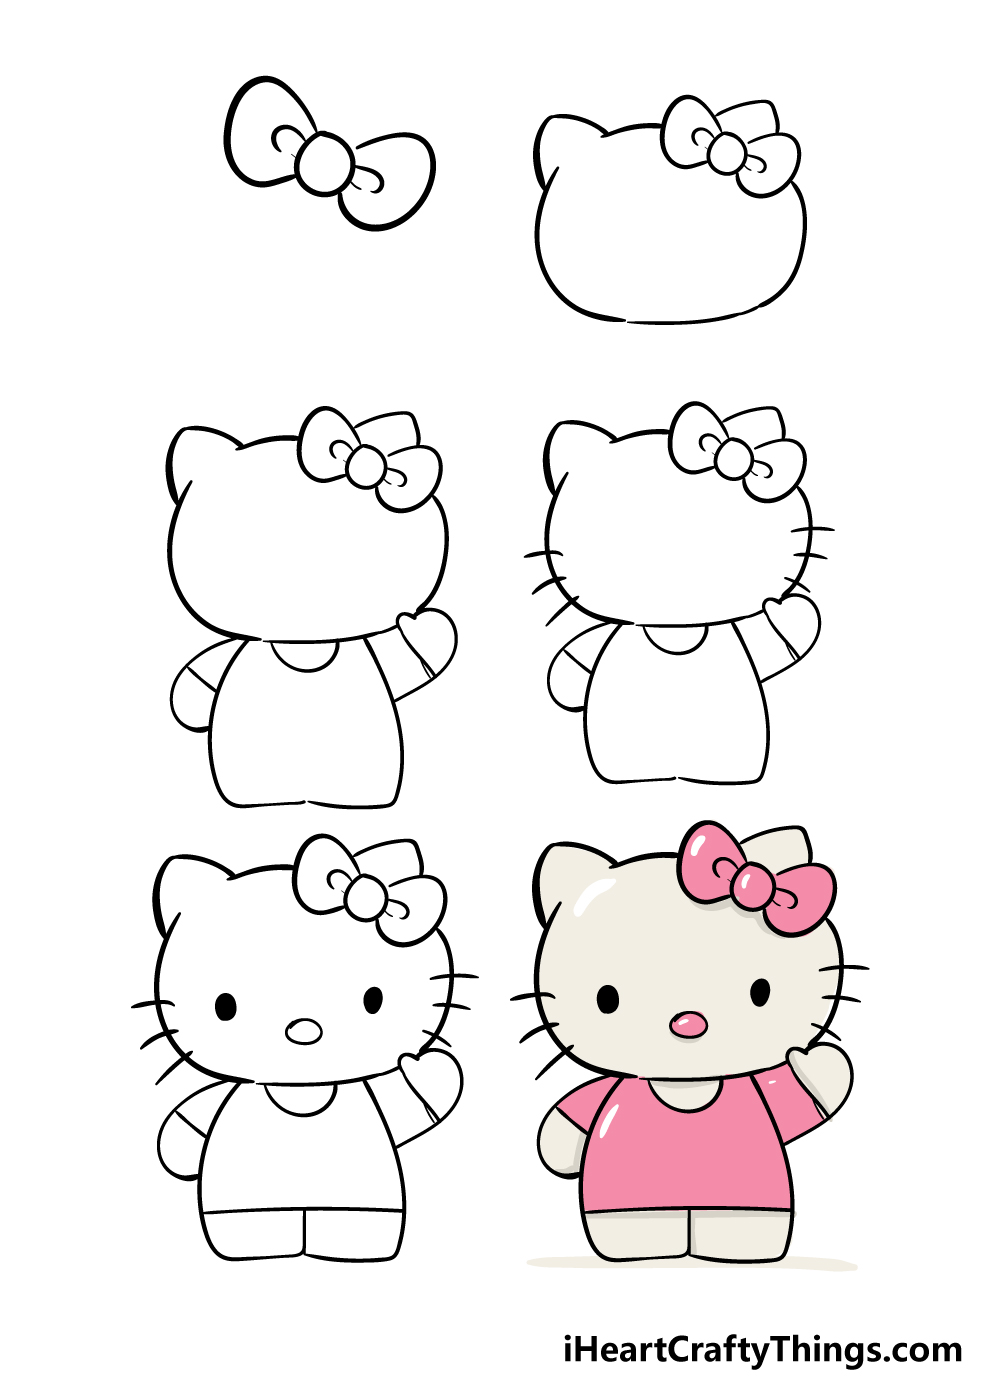 how to draw hello kitty in 6 steps